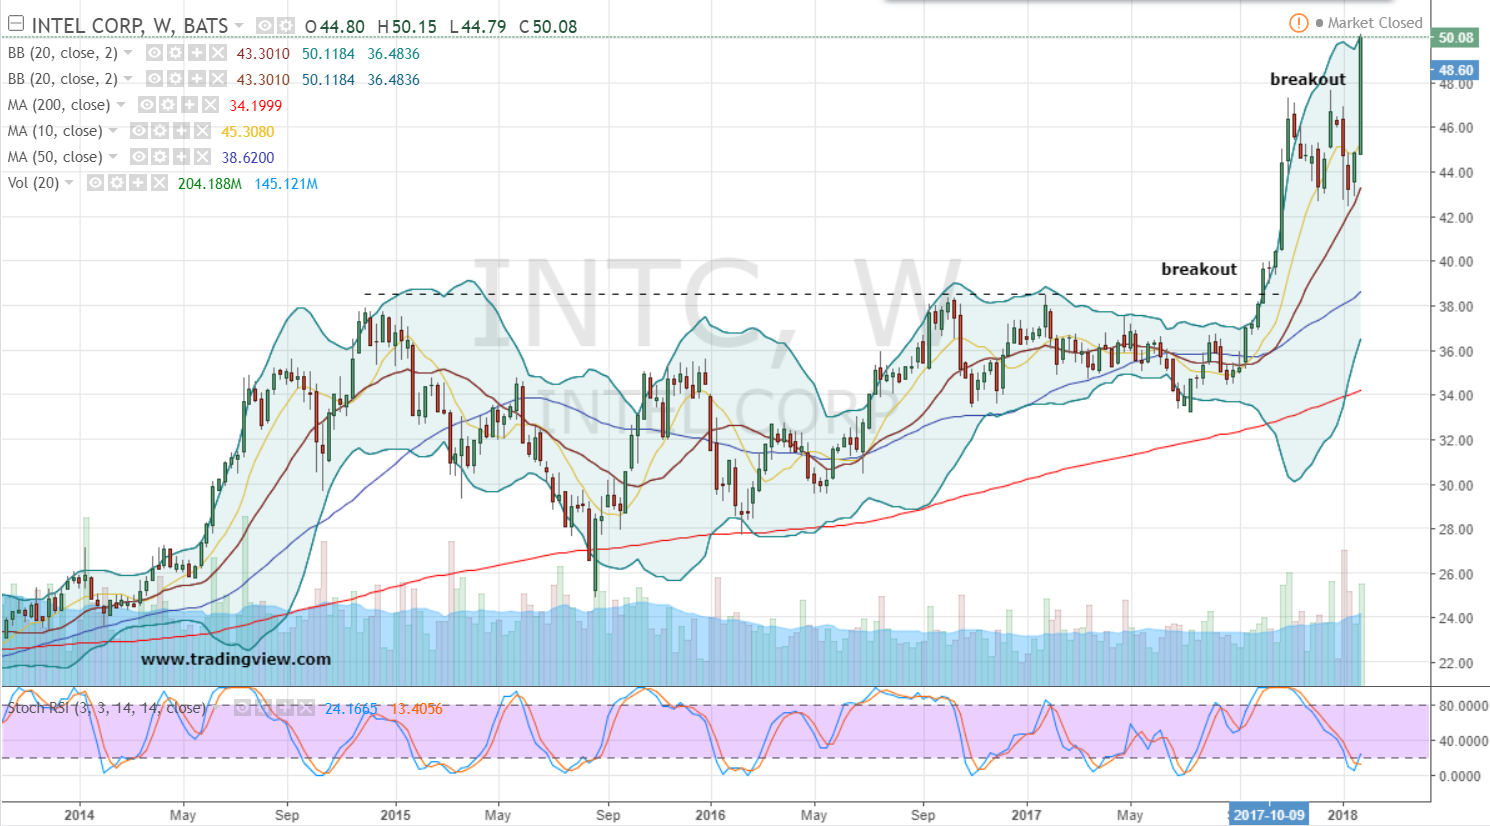 Short Term Trend Watch - Intel Corporation